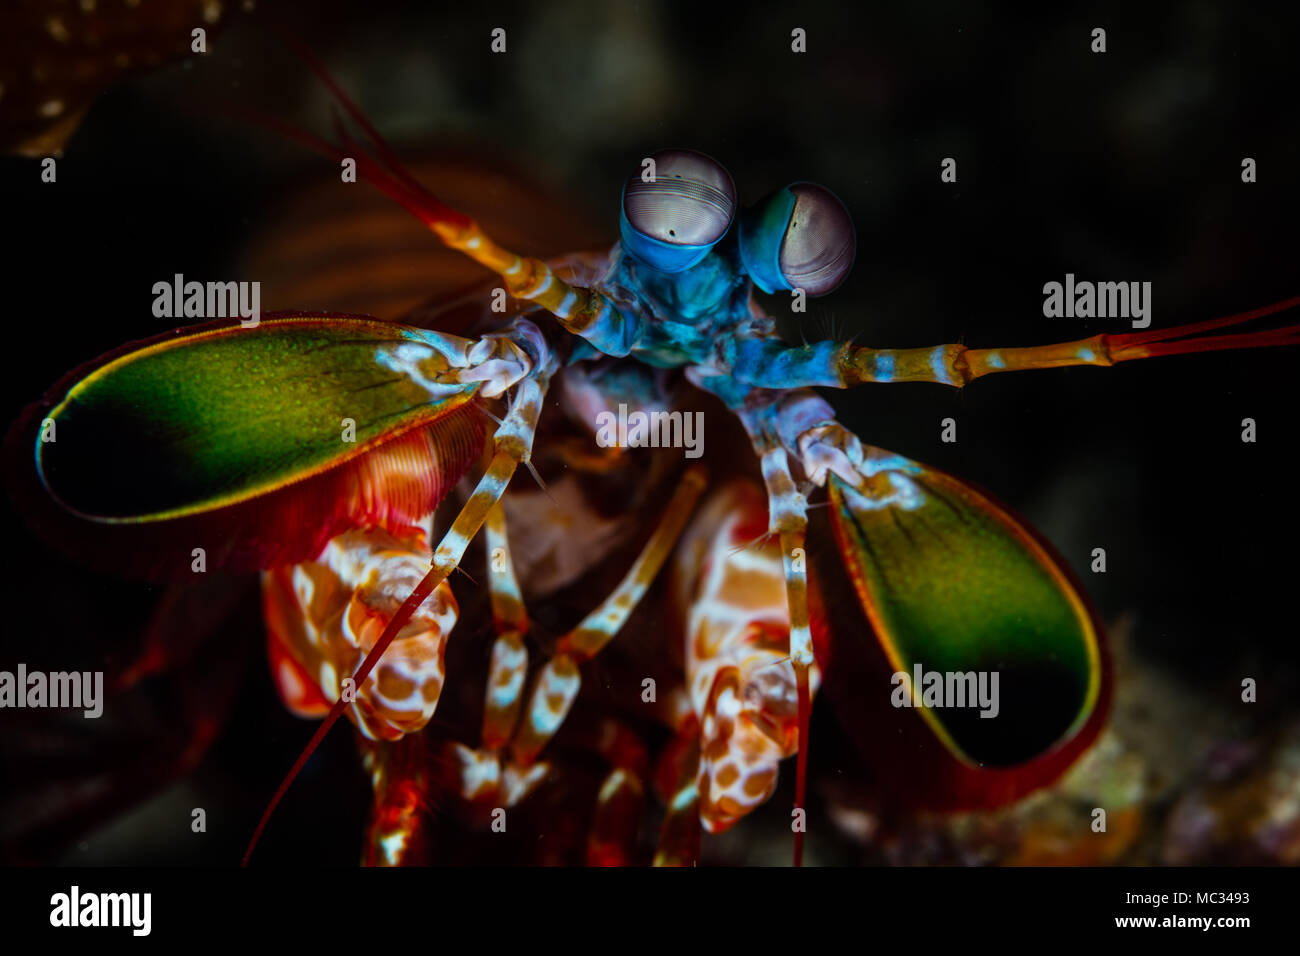 A vibrant Peacock mantis shrimp crawls across the seafloor in Lembeh Strait, Indonesia. This area is known for its bizarre critters. - Stock Image